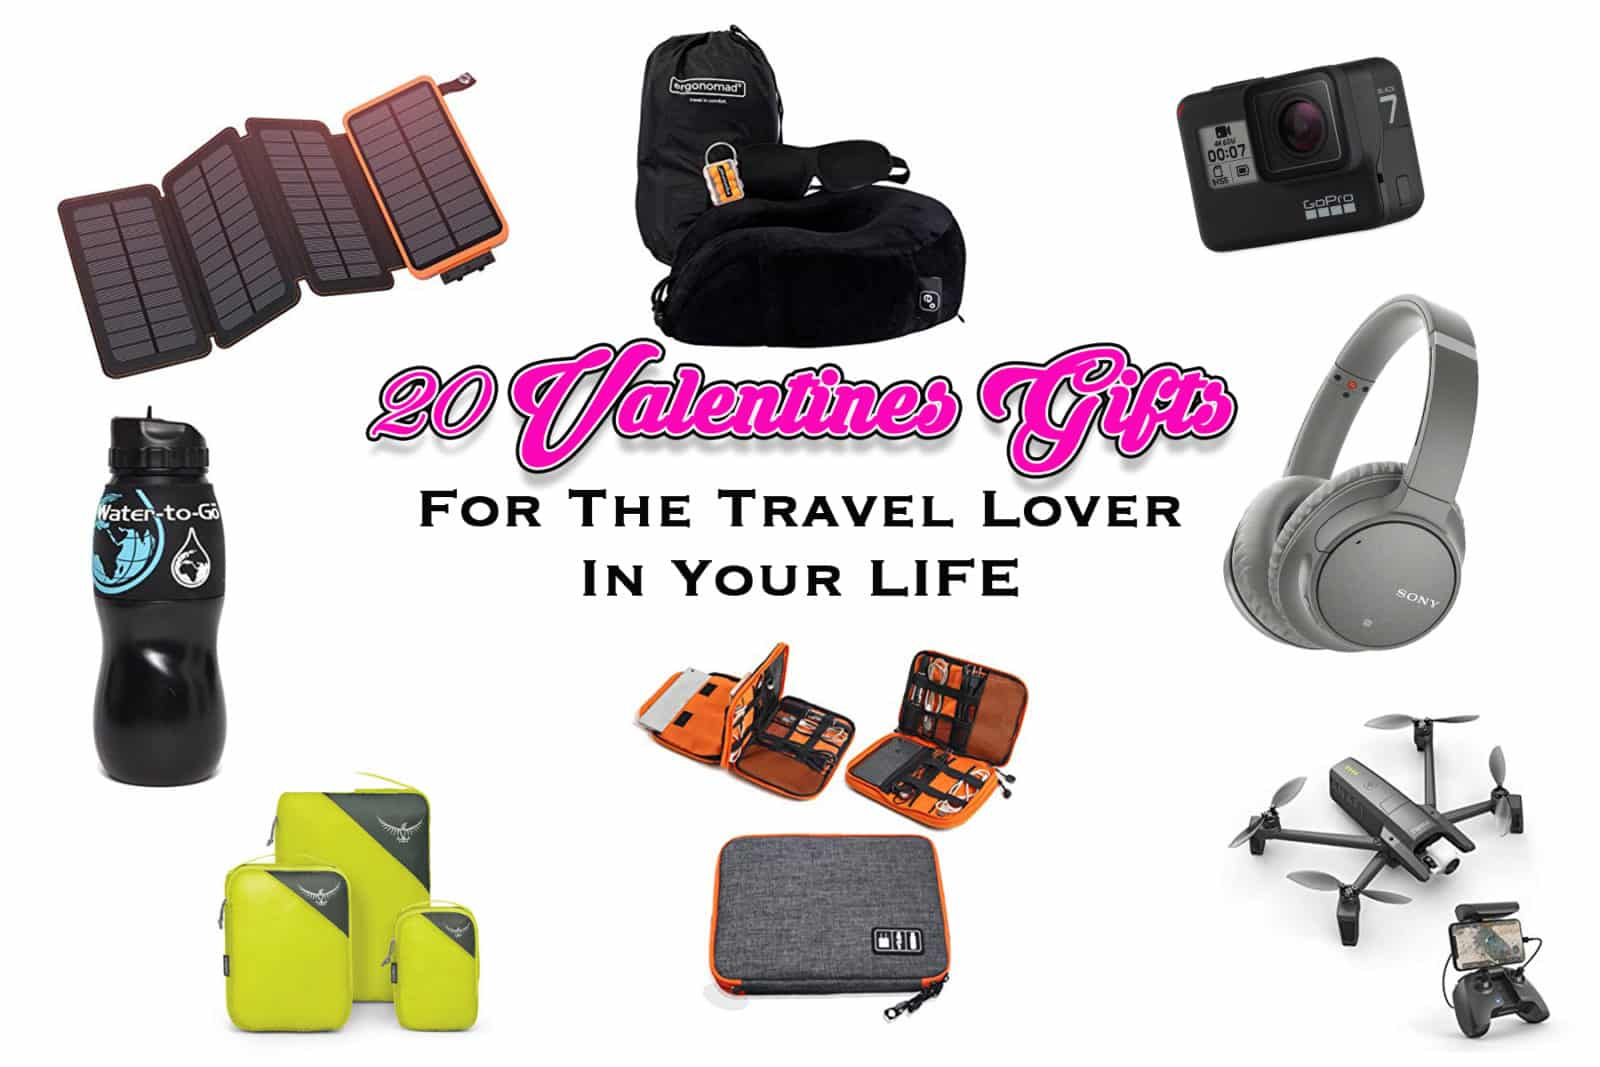 20 Valentines day Gifts For the travel lover in your life - one epic road trip blog